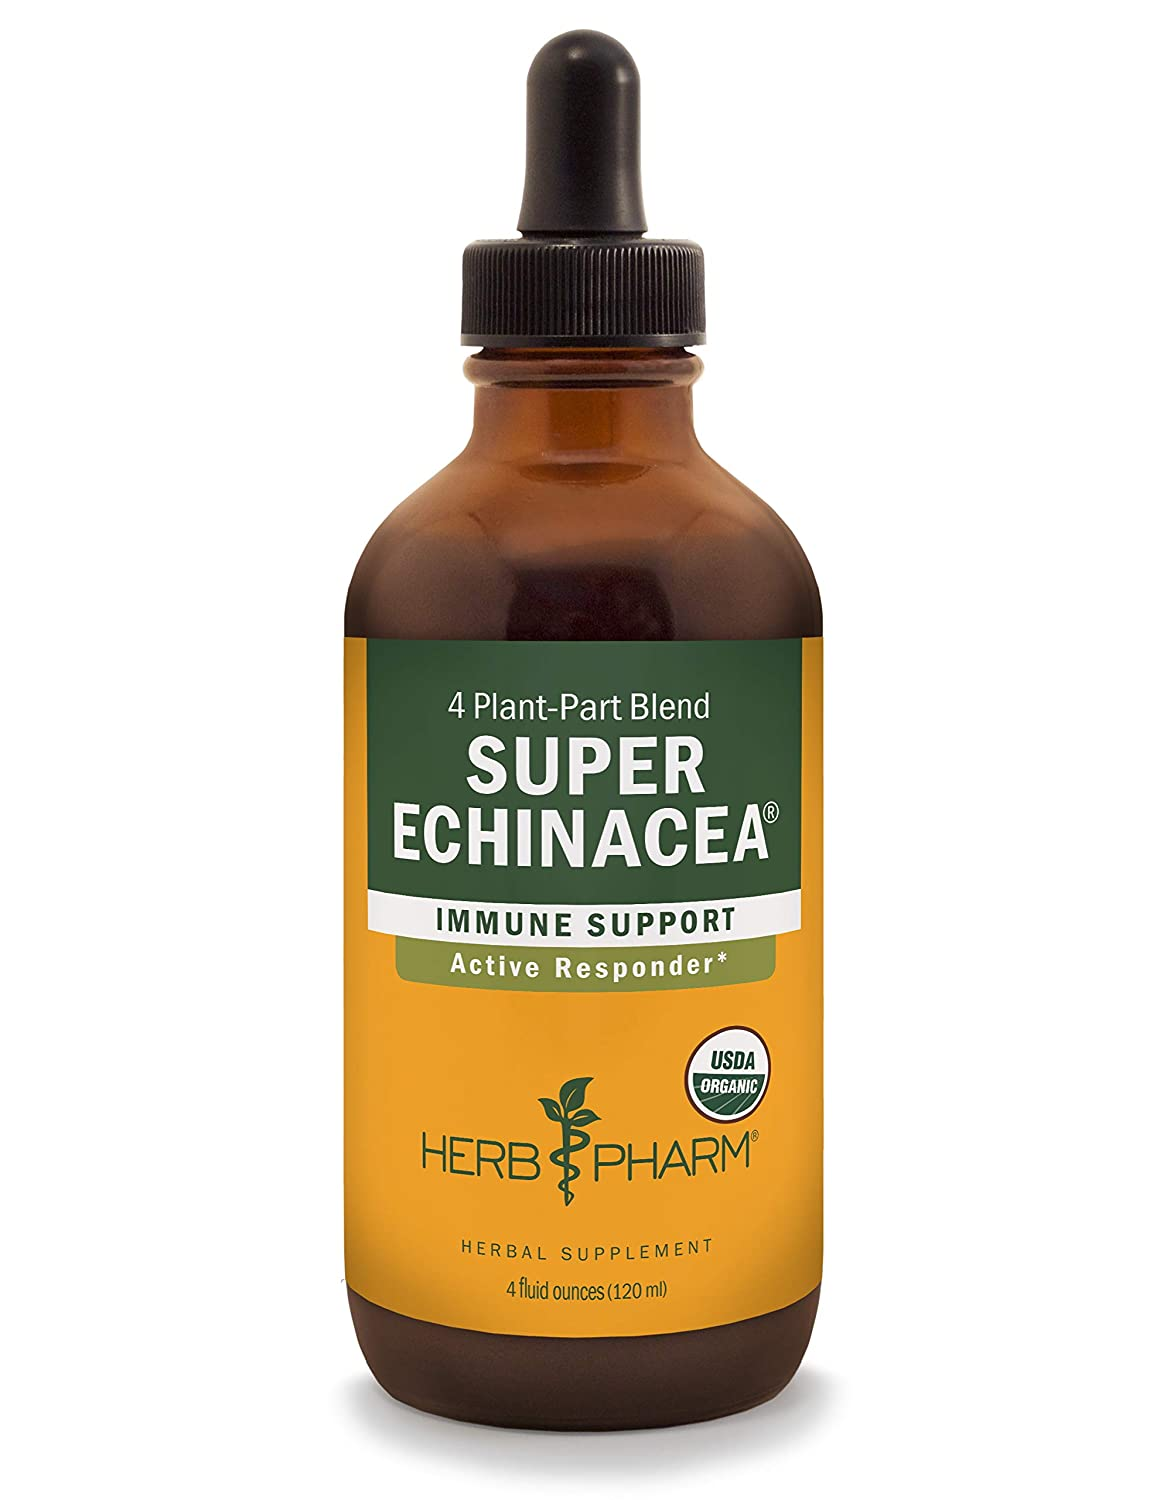 Herb Pharm Certified Organic Super Echinacea Liquid Extract for Active Immune System Support – 4 Ounce